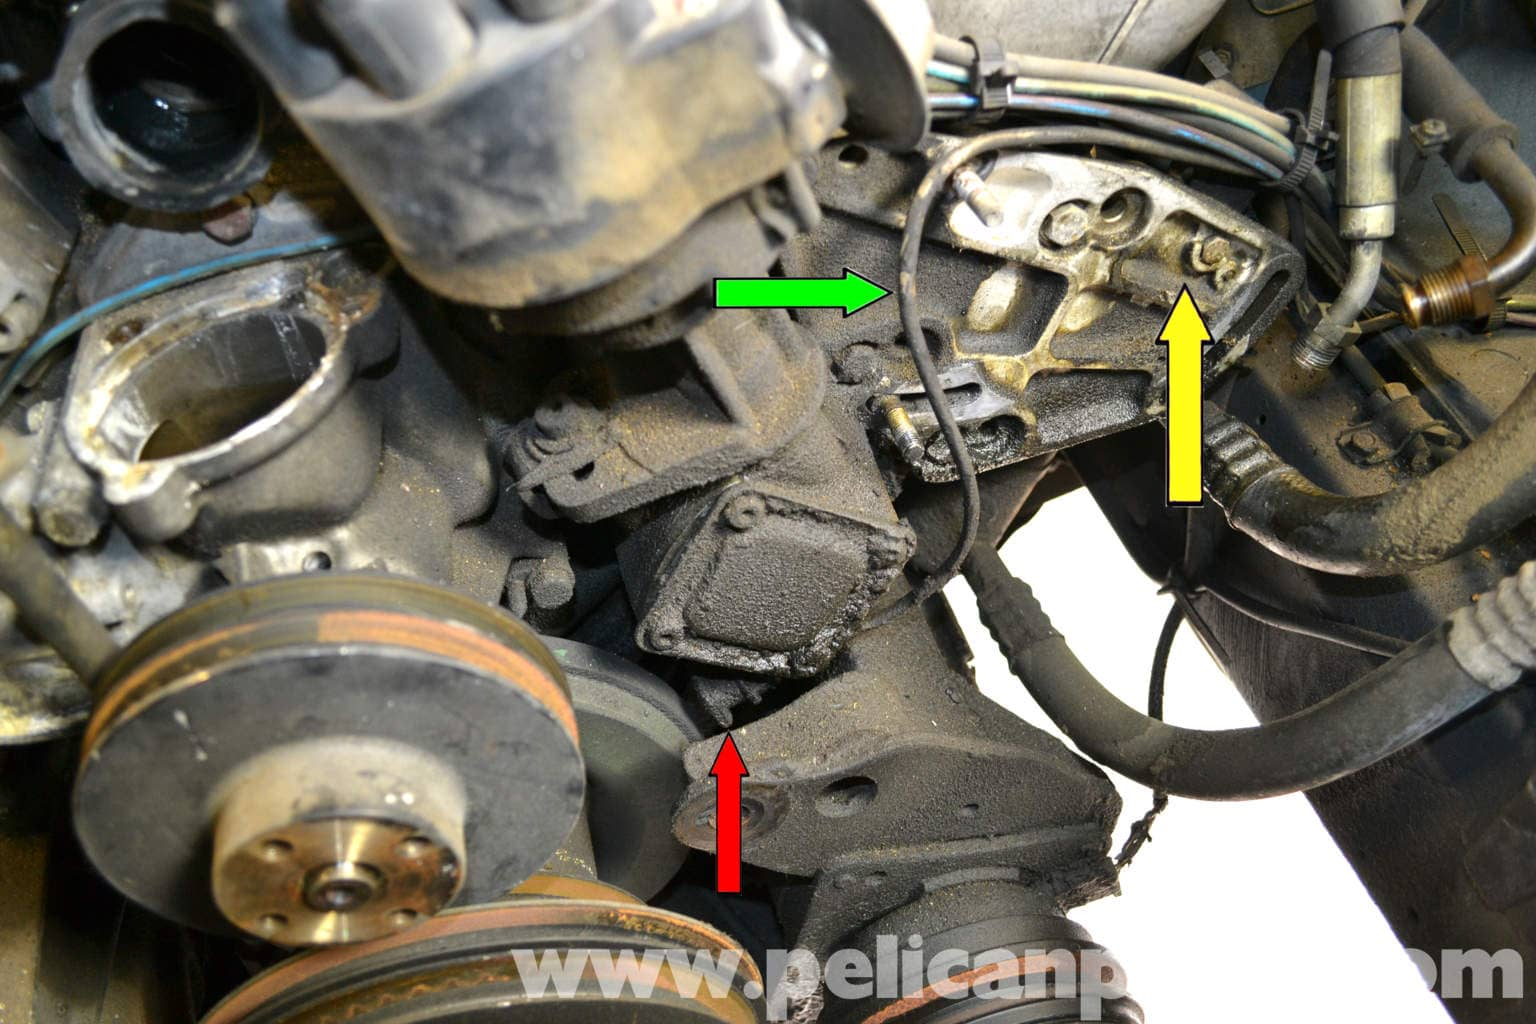 96 honda civic stereo wiring diagram mercedes benz w126 top dead center sensor replacement  mercedes benz w126 top dead center sensor replacement